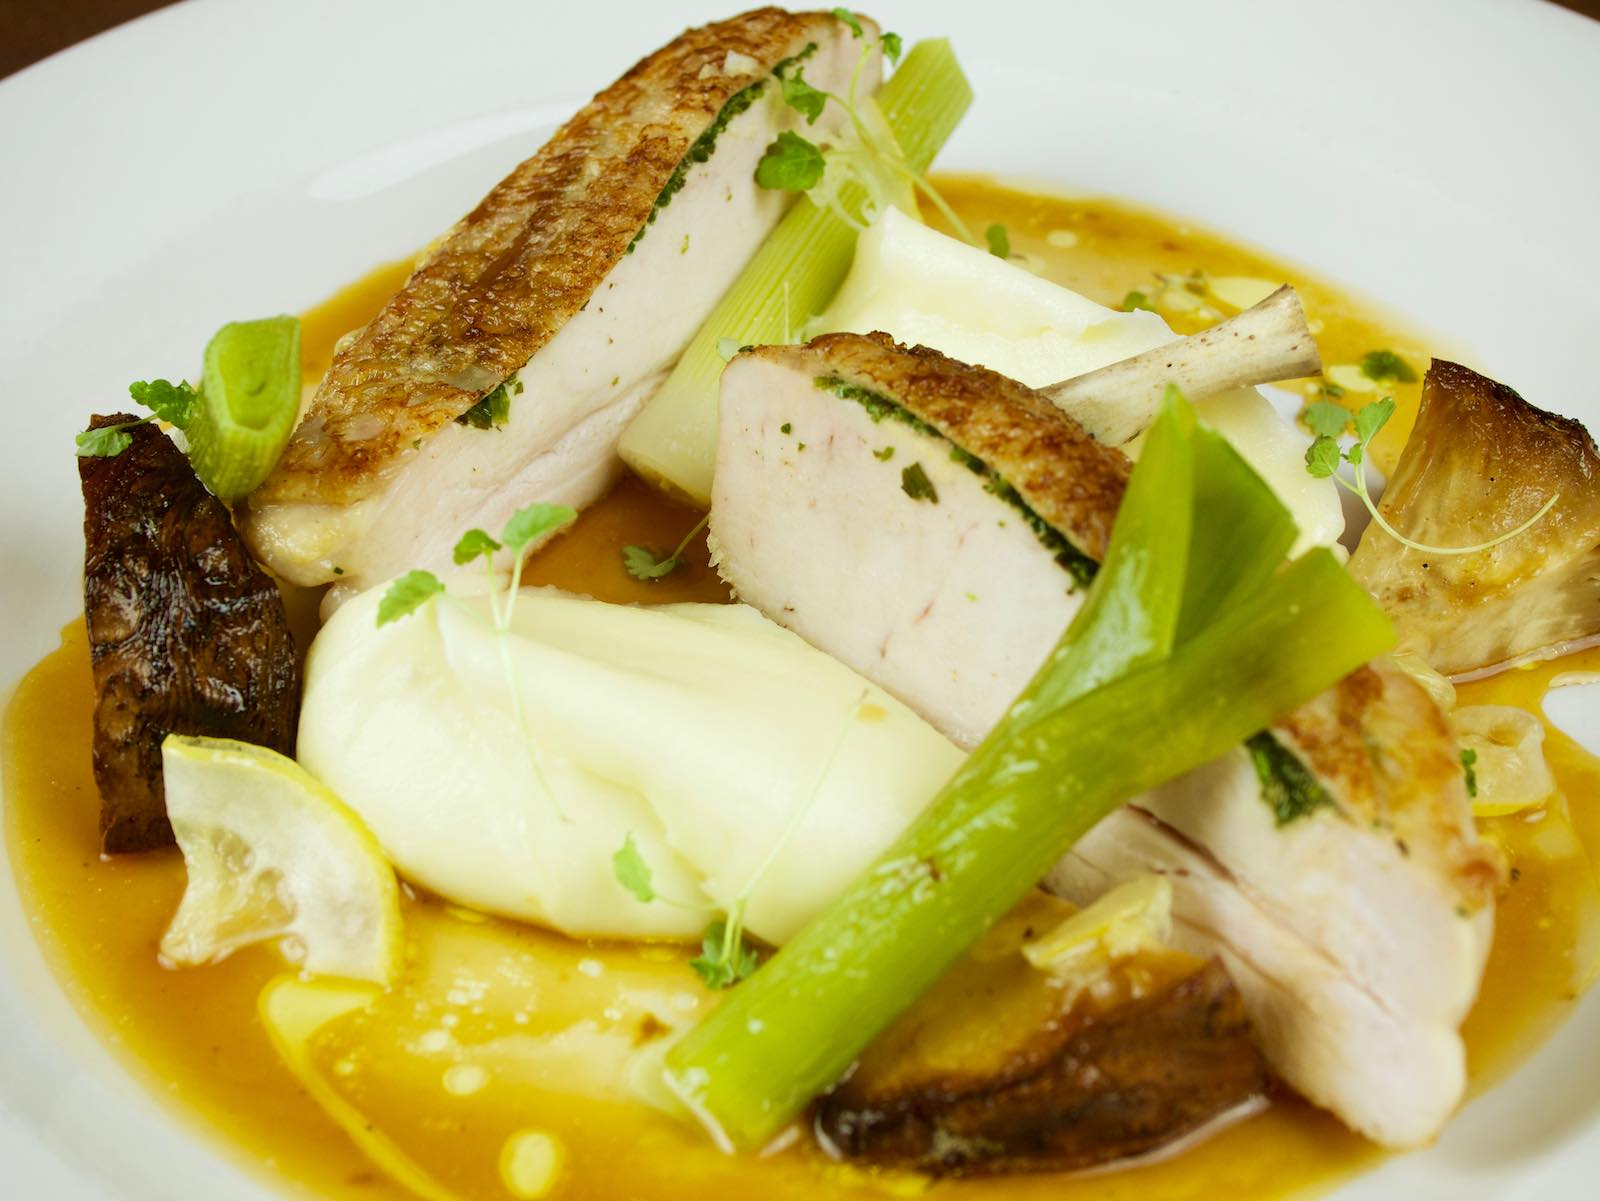 Roasted-chicken-breast-with-lemon-thyme-butter-creamed-potato-celeriac-baby-leeks-chicken-gravy-web-page